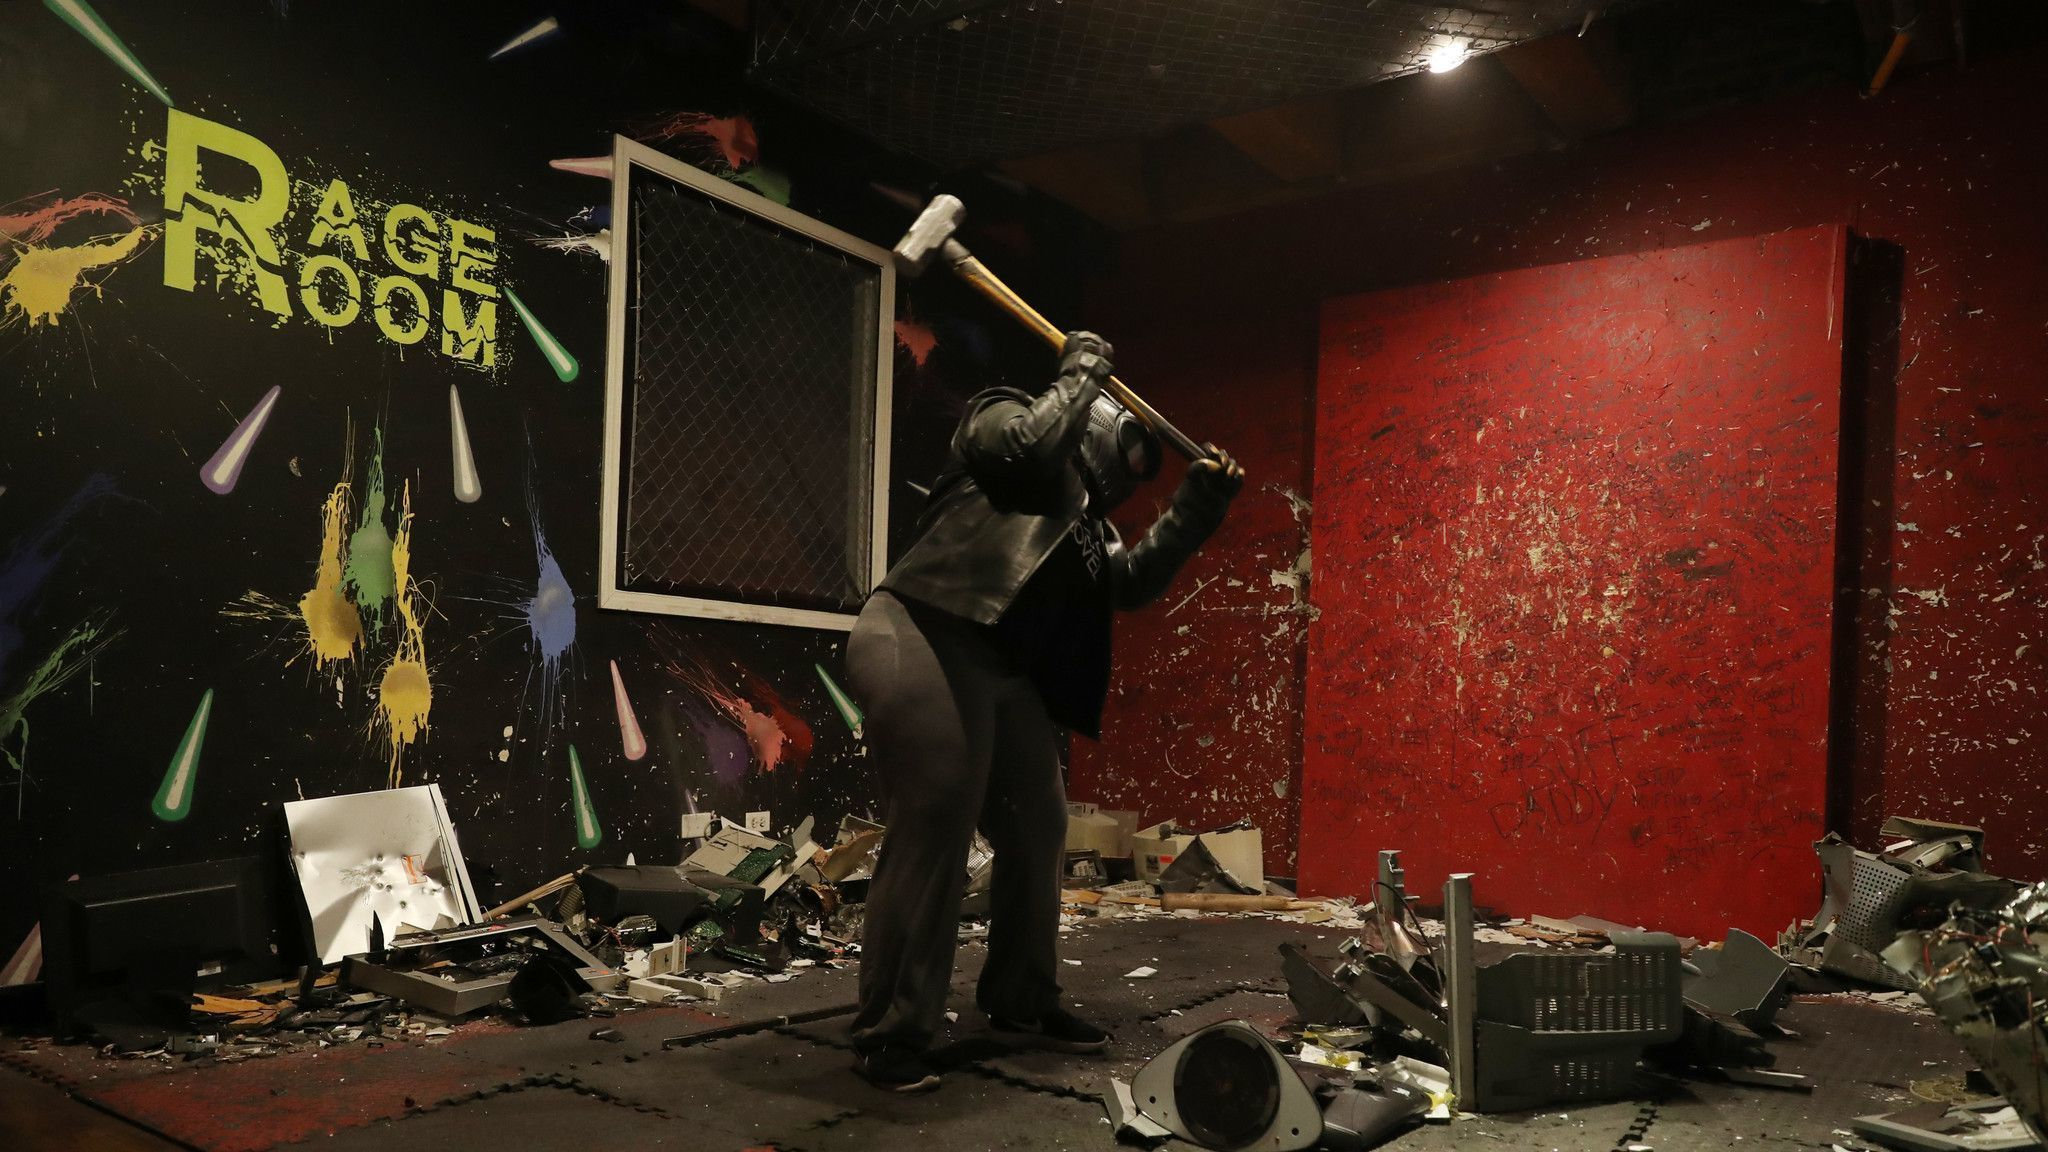 Rage rooms needed for Illinois' beleaguered politicians: Kim Foxx, Ed Burke and J.B Pritzker